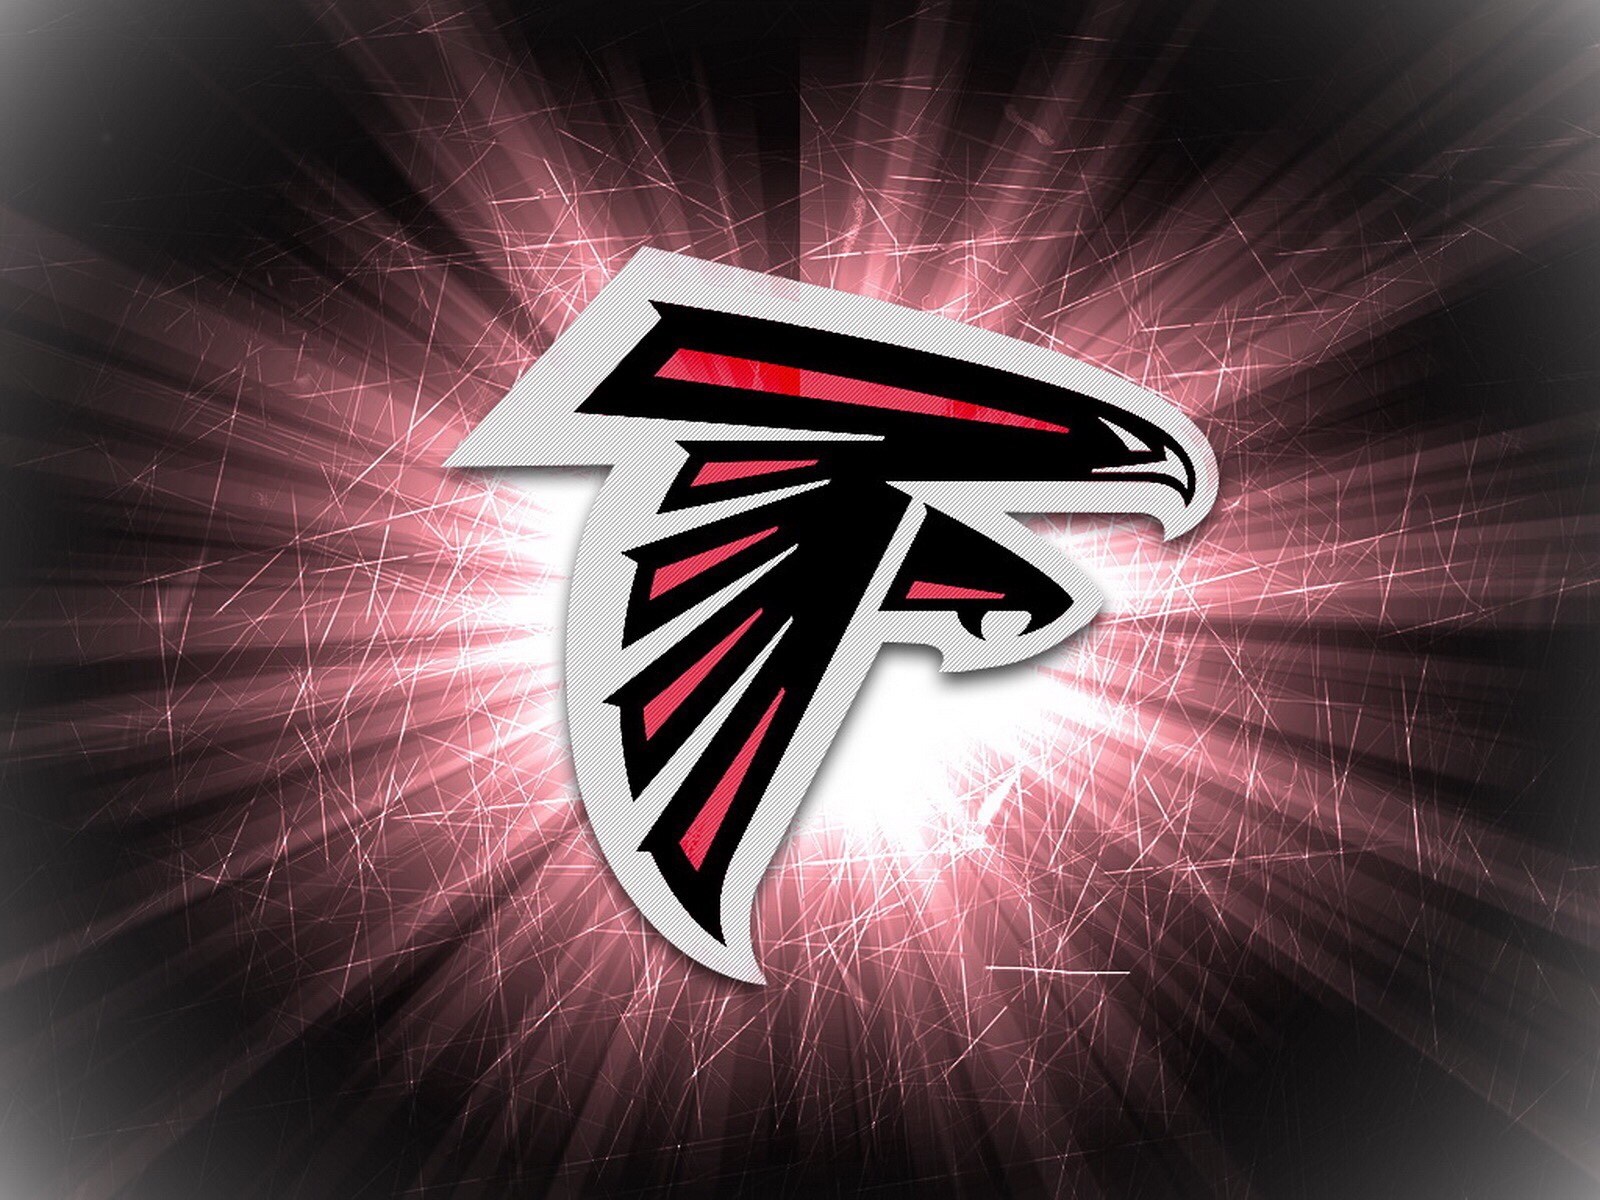 Falcons Iphone Wallpaper: IPhone 6/7 Plus Wallpaper Request Thread